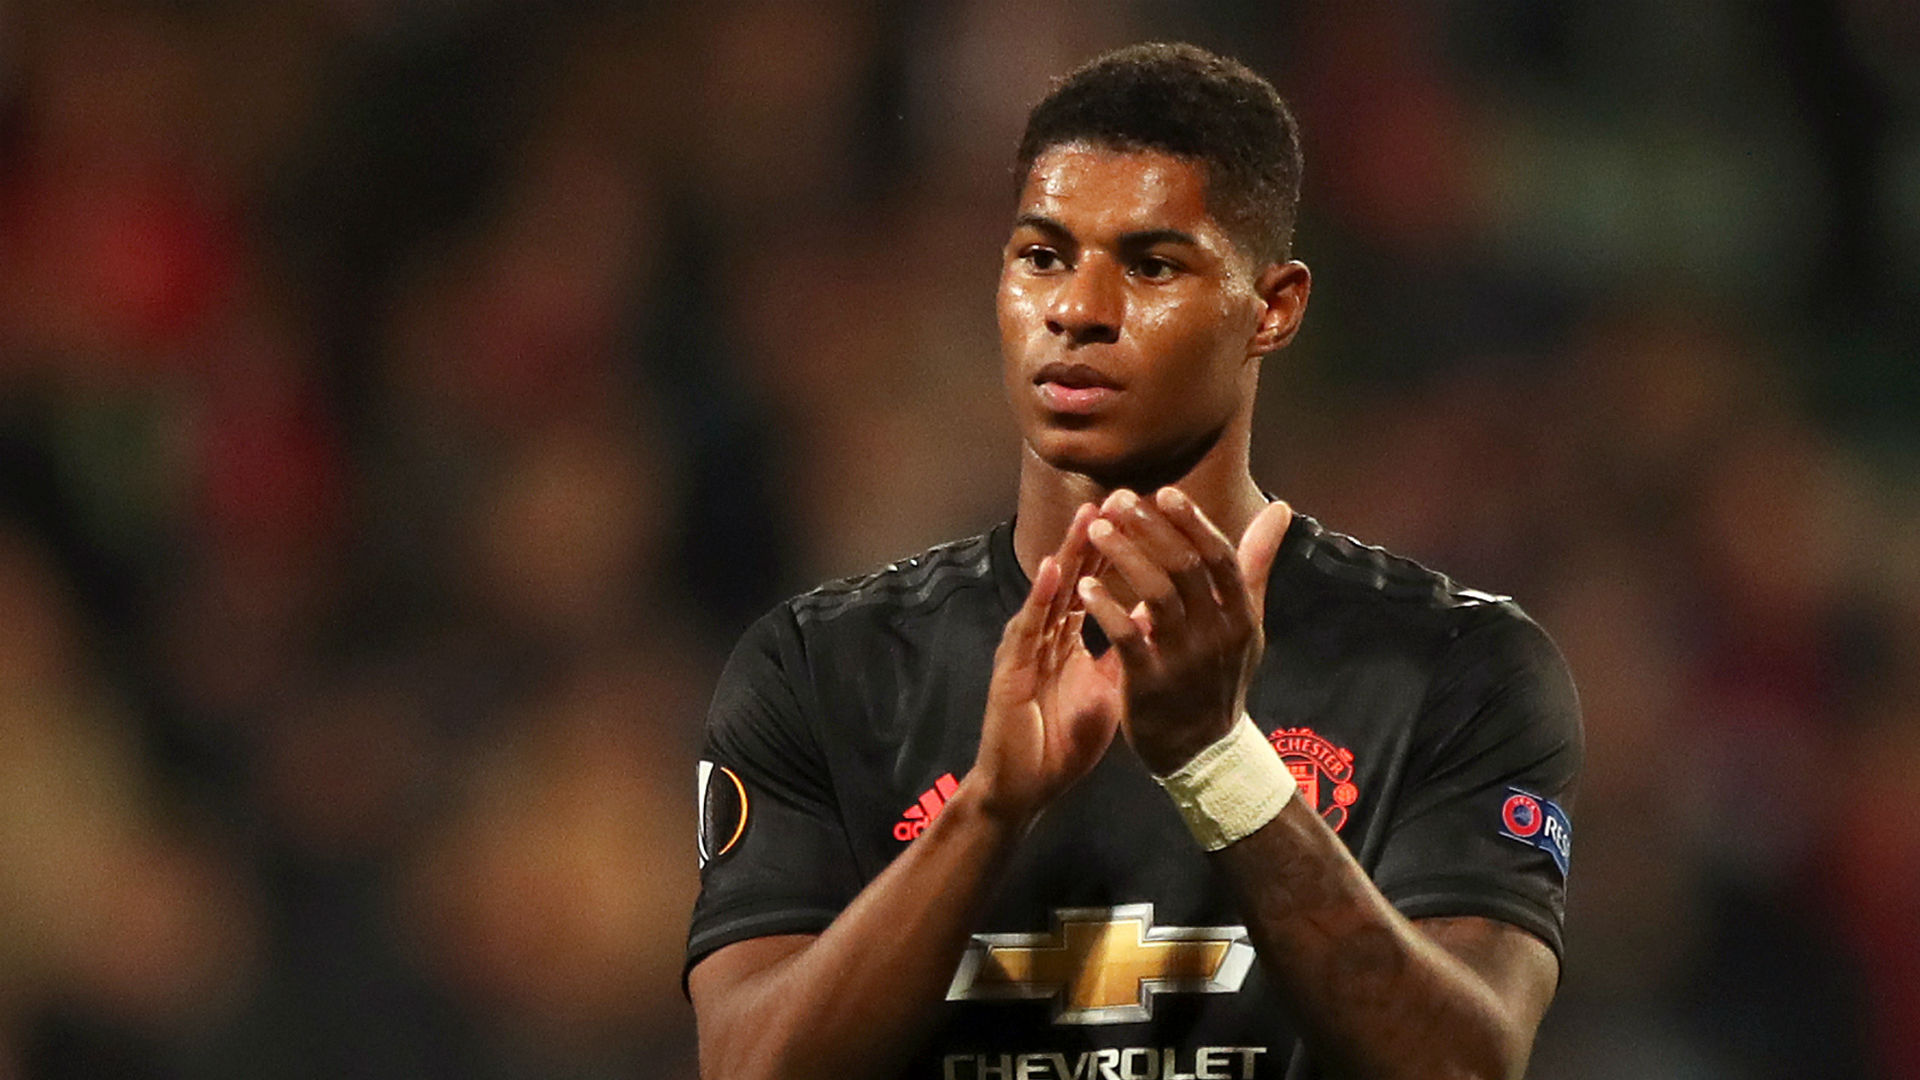 Marcus Rashford forces United Kingdom  government into u-turn over free school meals